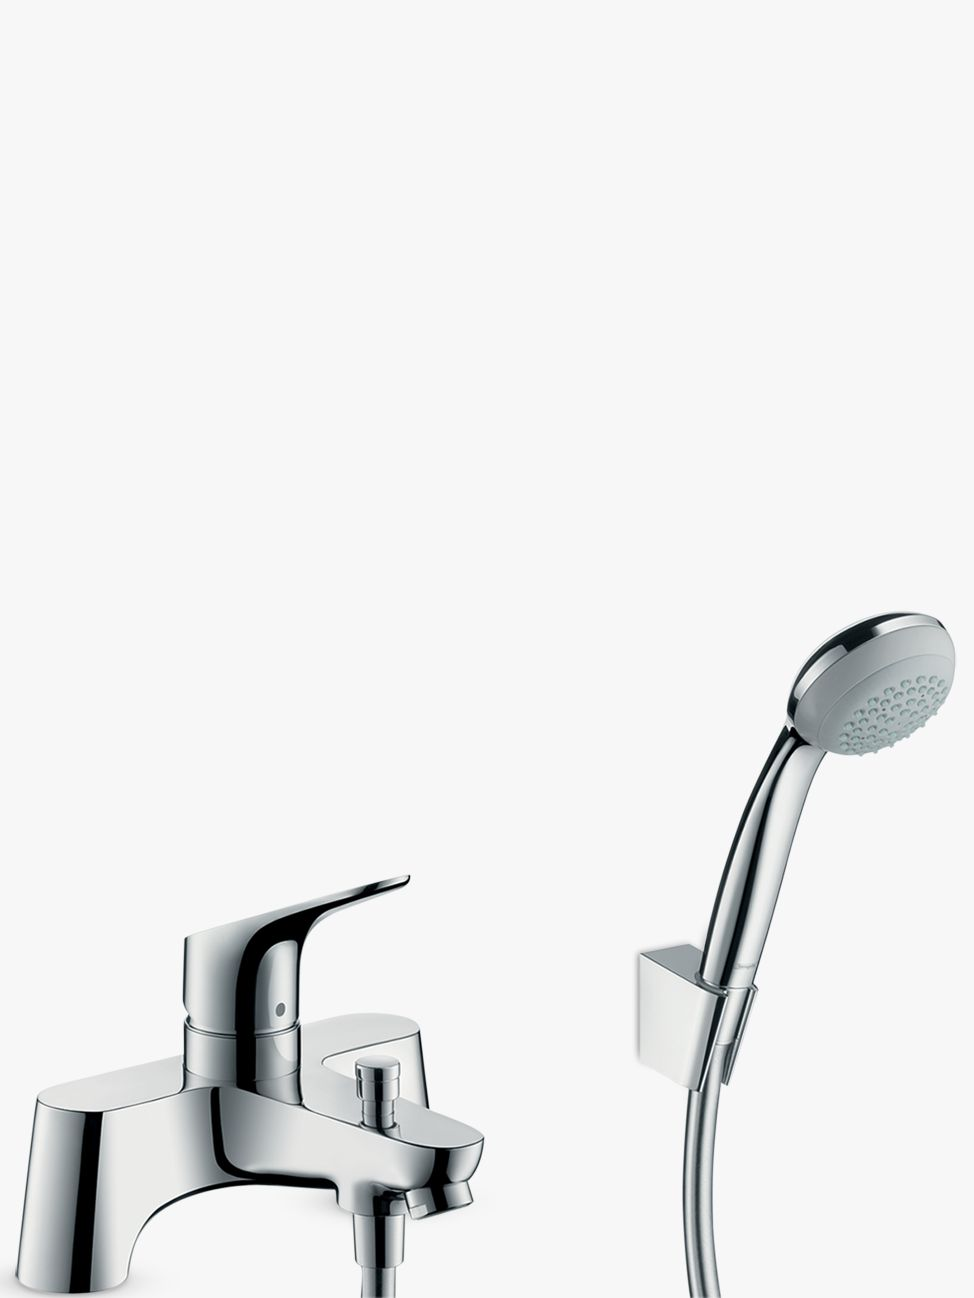 Hansgrohe Hansgrohe Focus Single Lever 2 Hole Bathroom Mixer Tap / Crometta 85 Hand Shower, Chrome